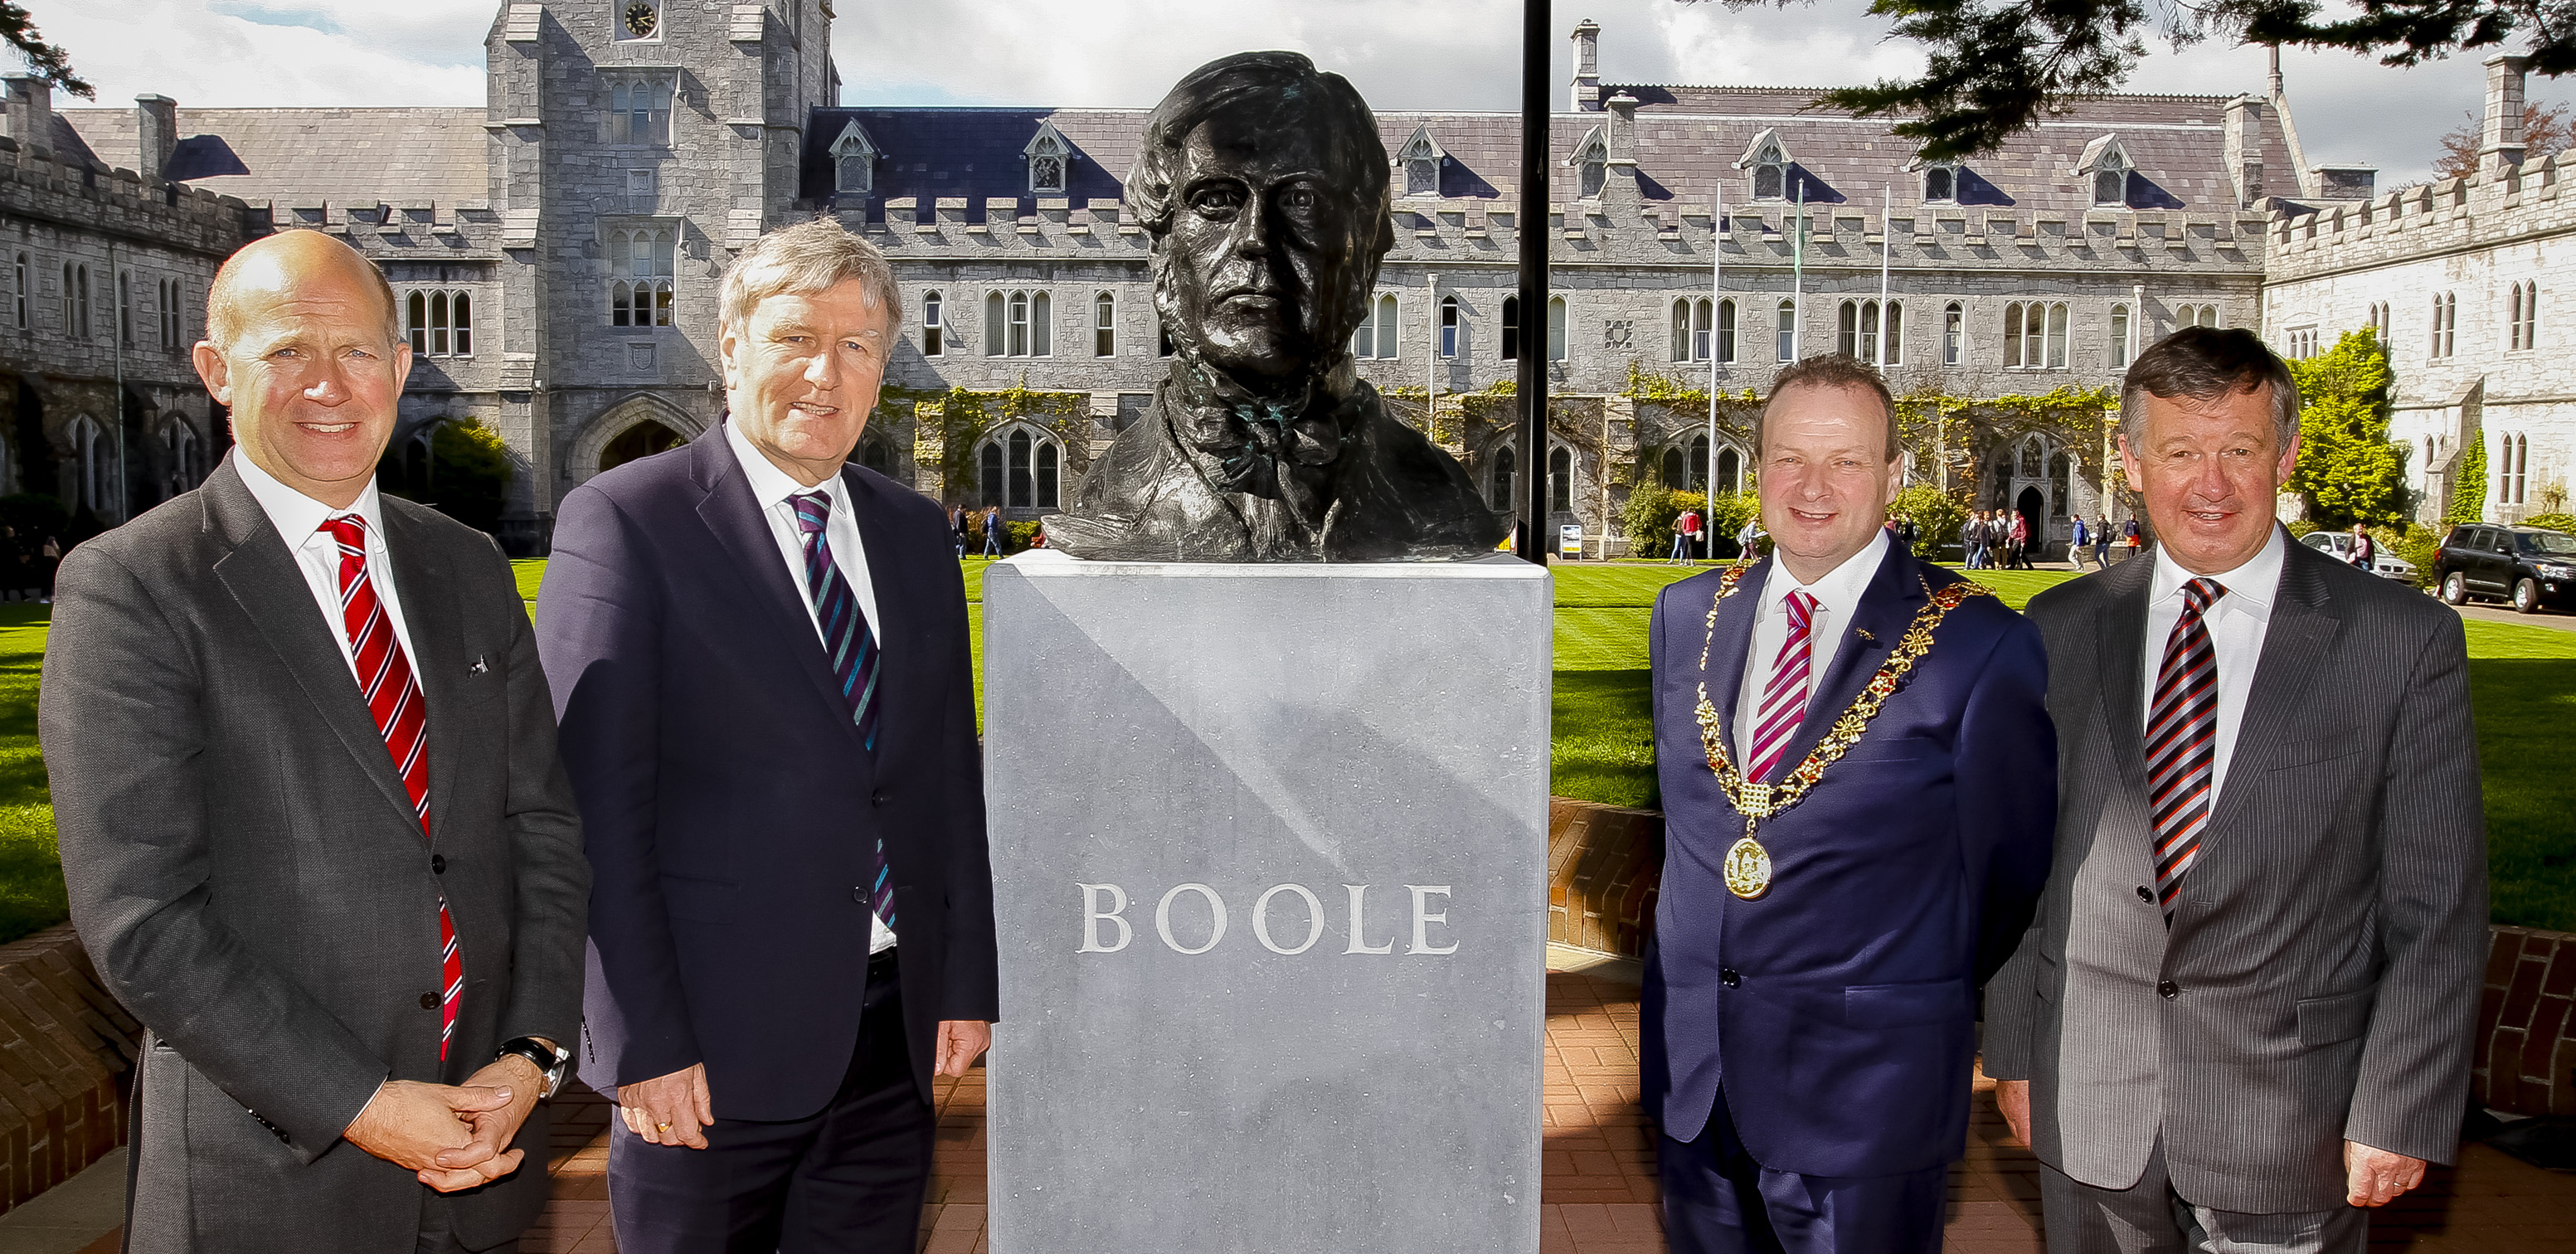 UCC unveils George Boole bust